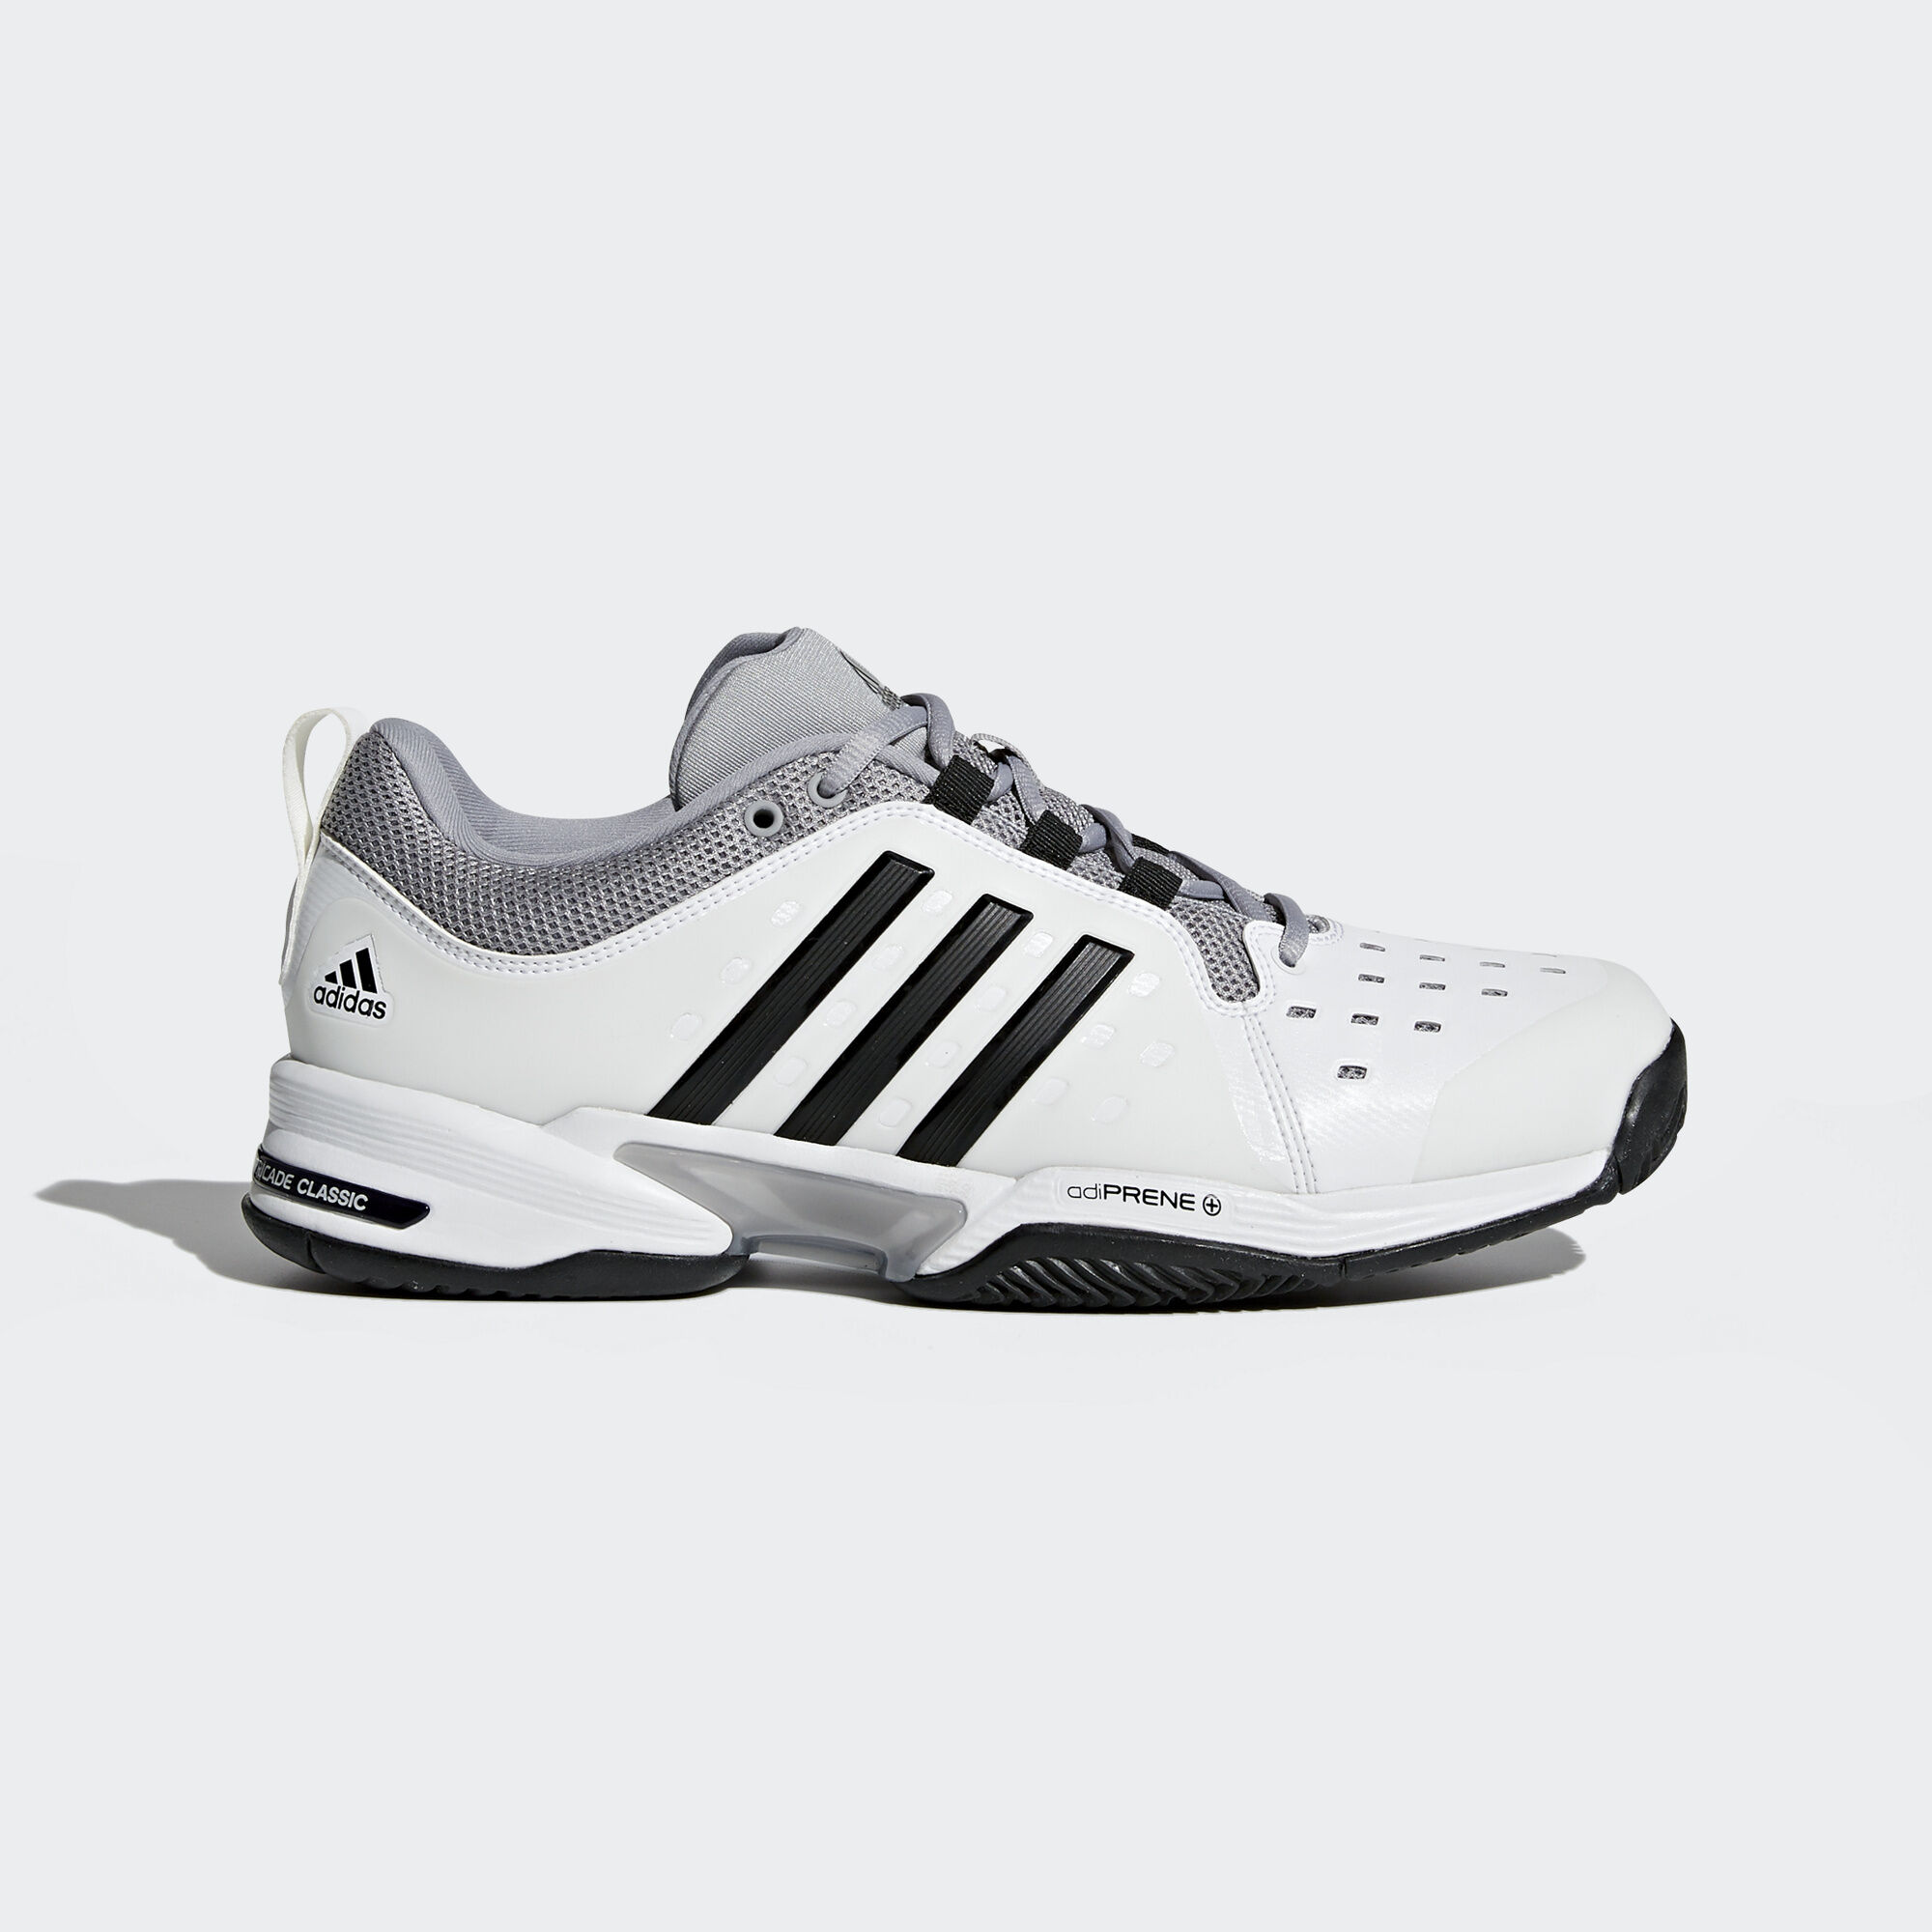 adidas ultra boost women 2017 bracket black and white adidas shoes for girls